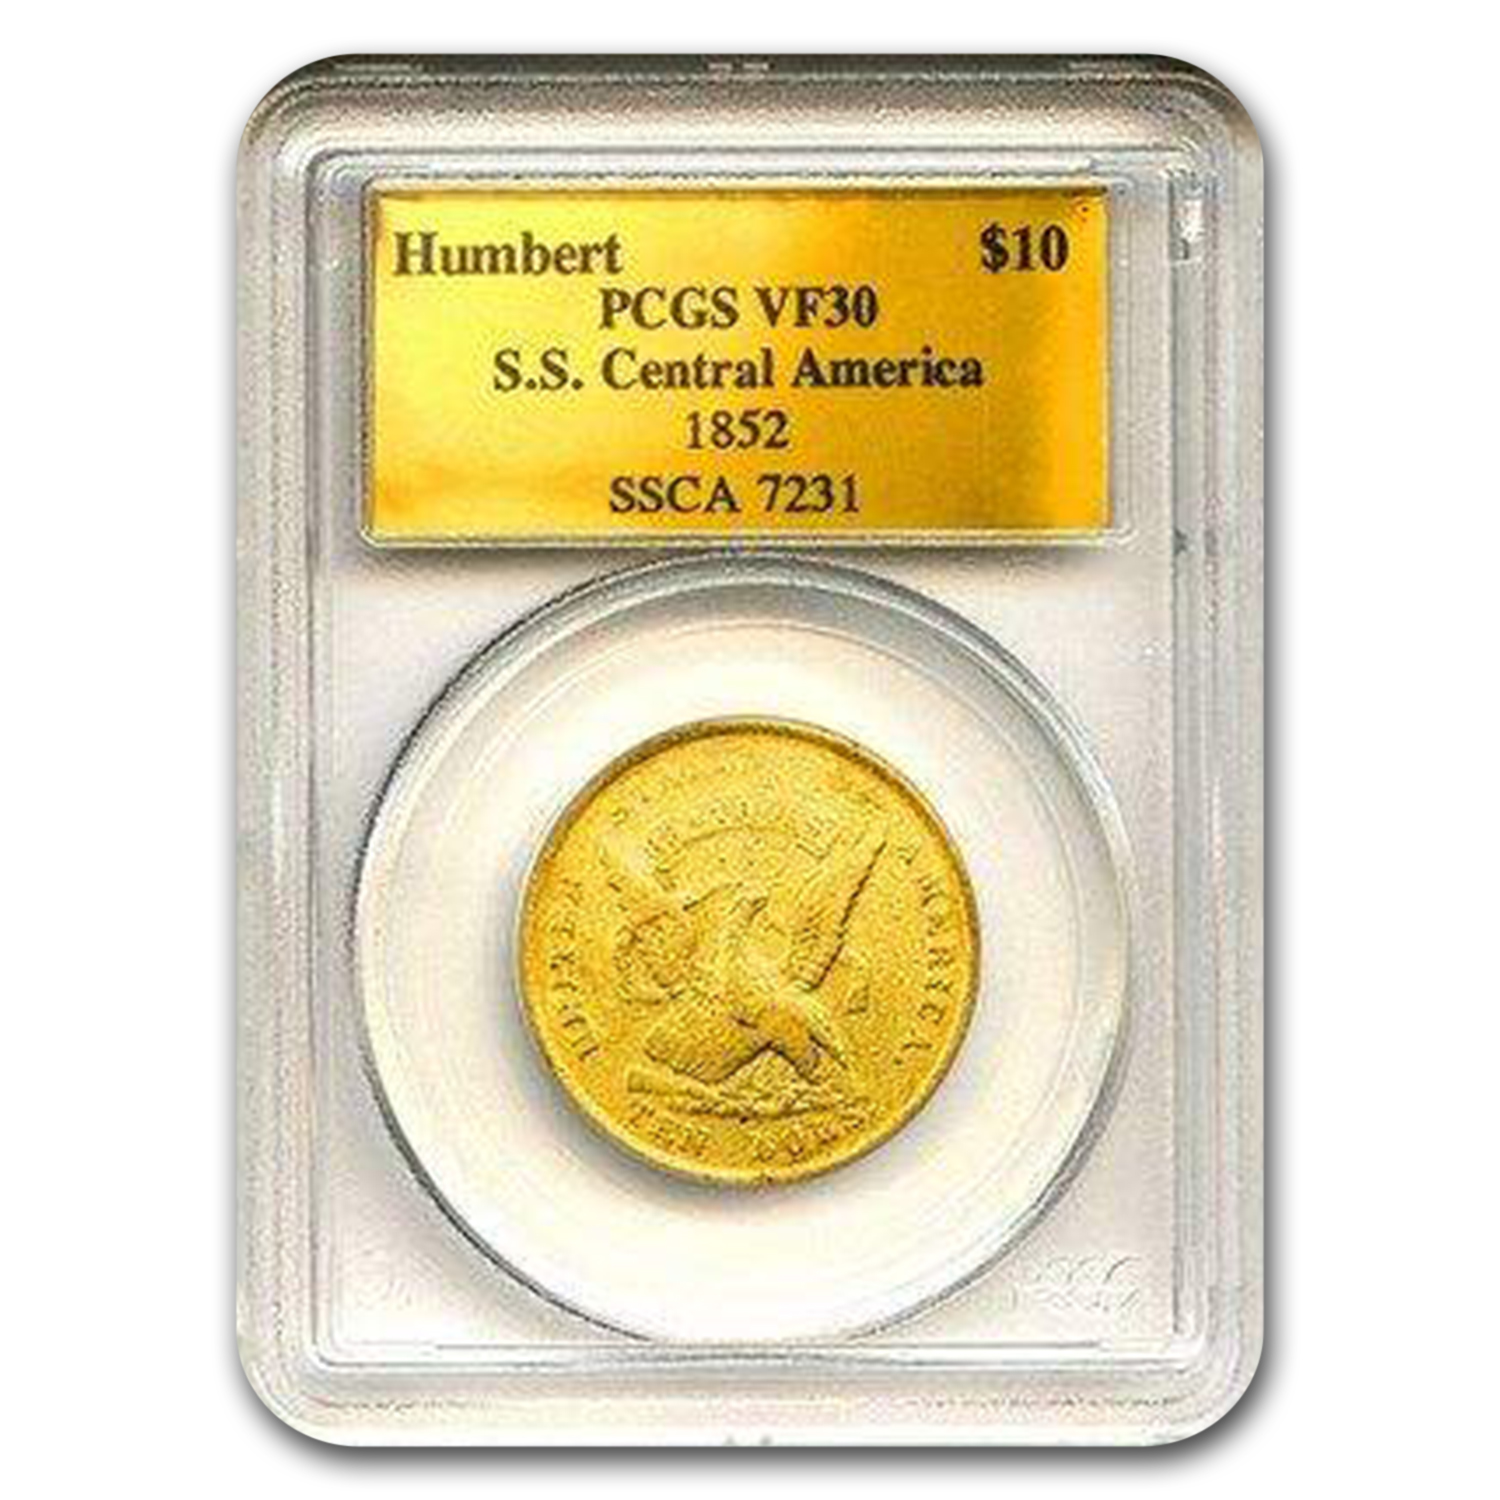 1852 $10 Gold Eagle VF-30 PCGS (Humbert , S.S. Central America)